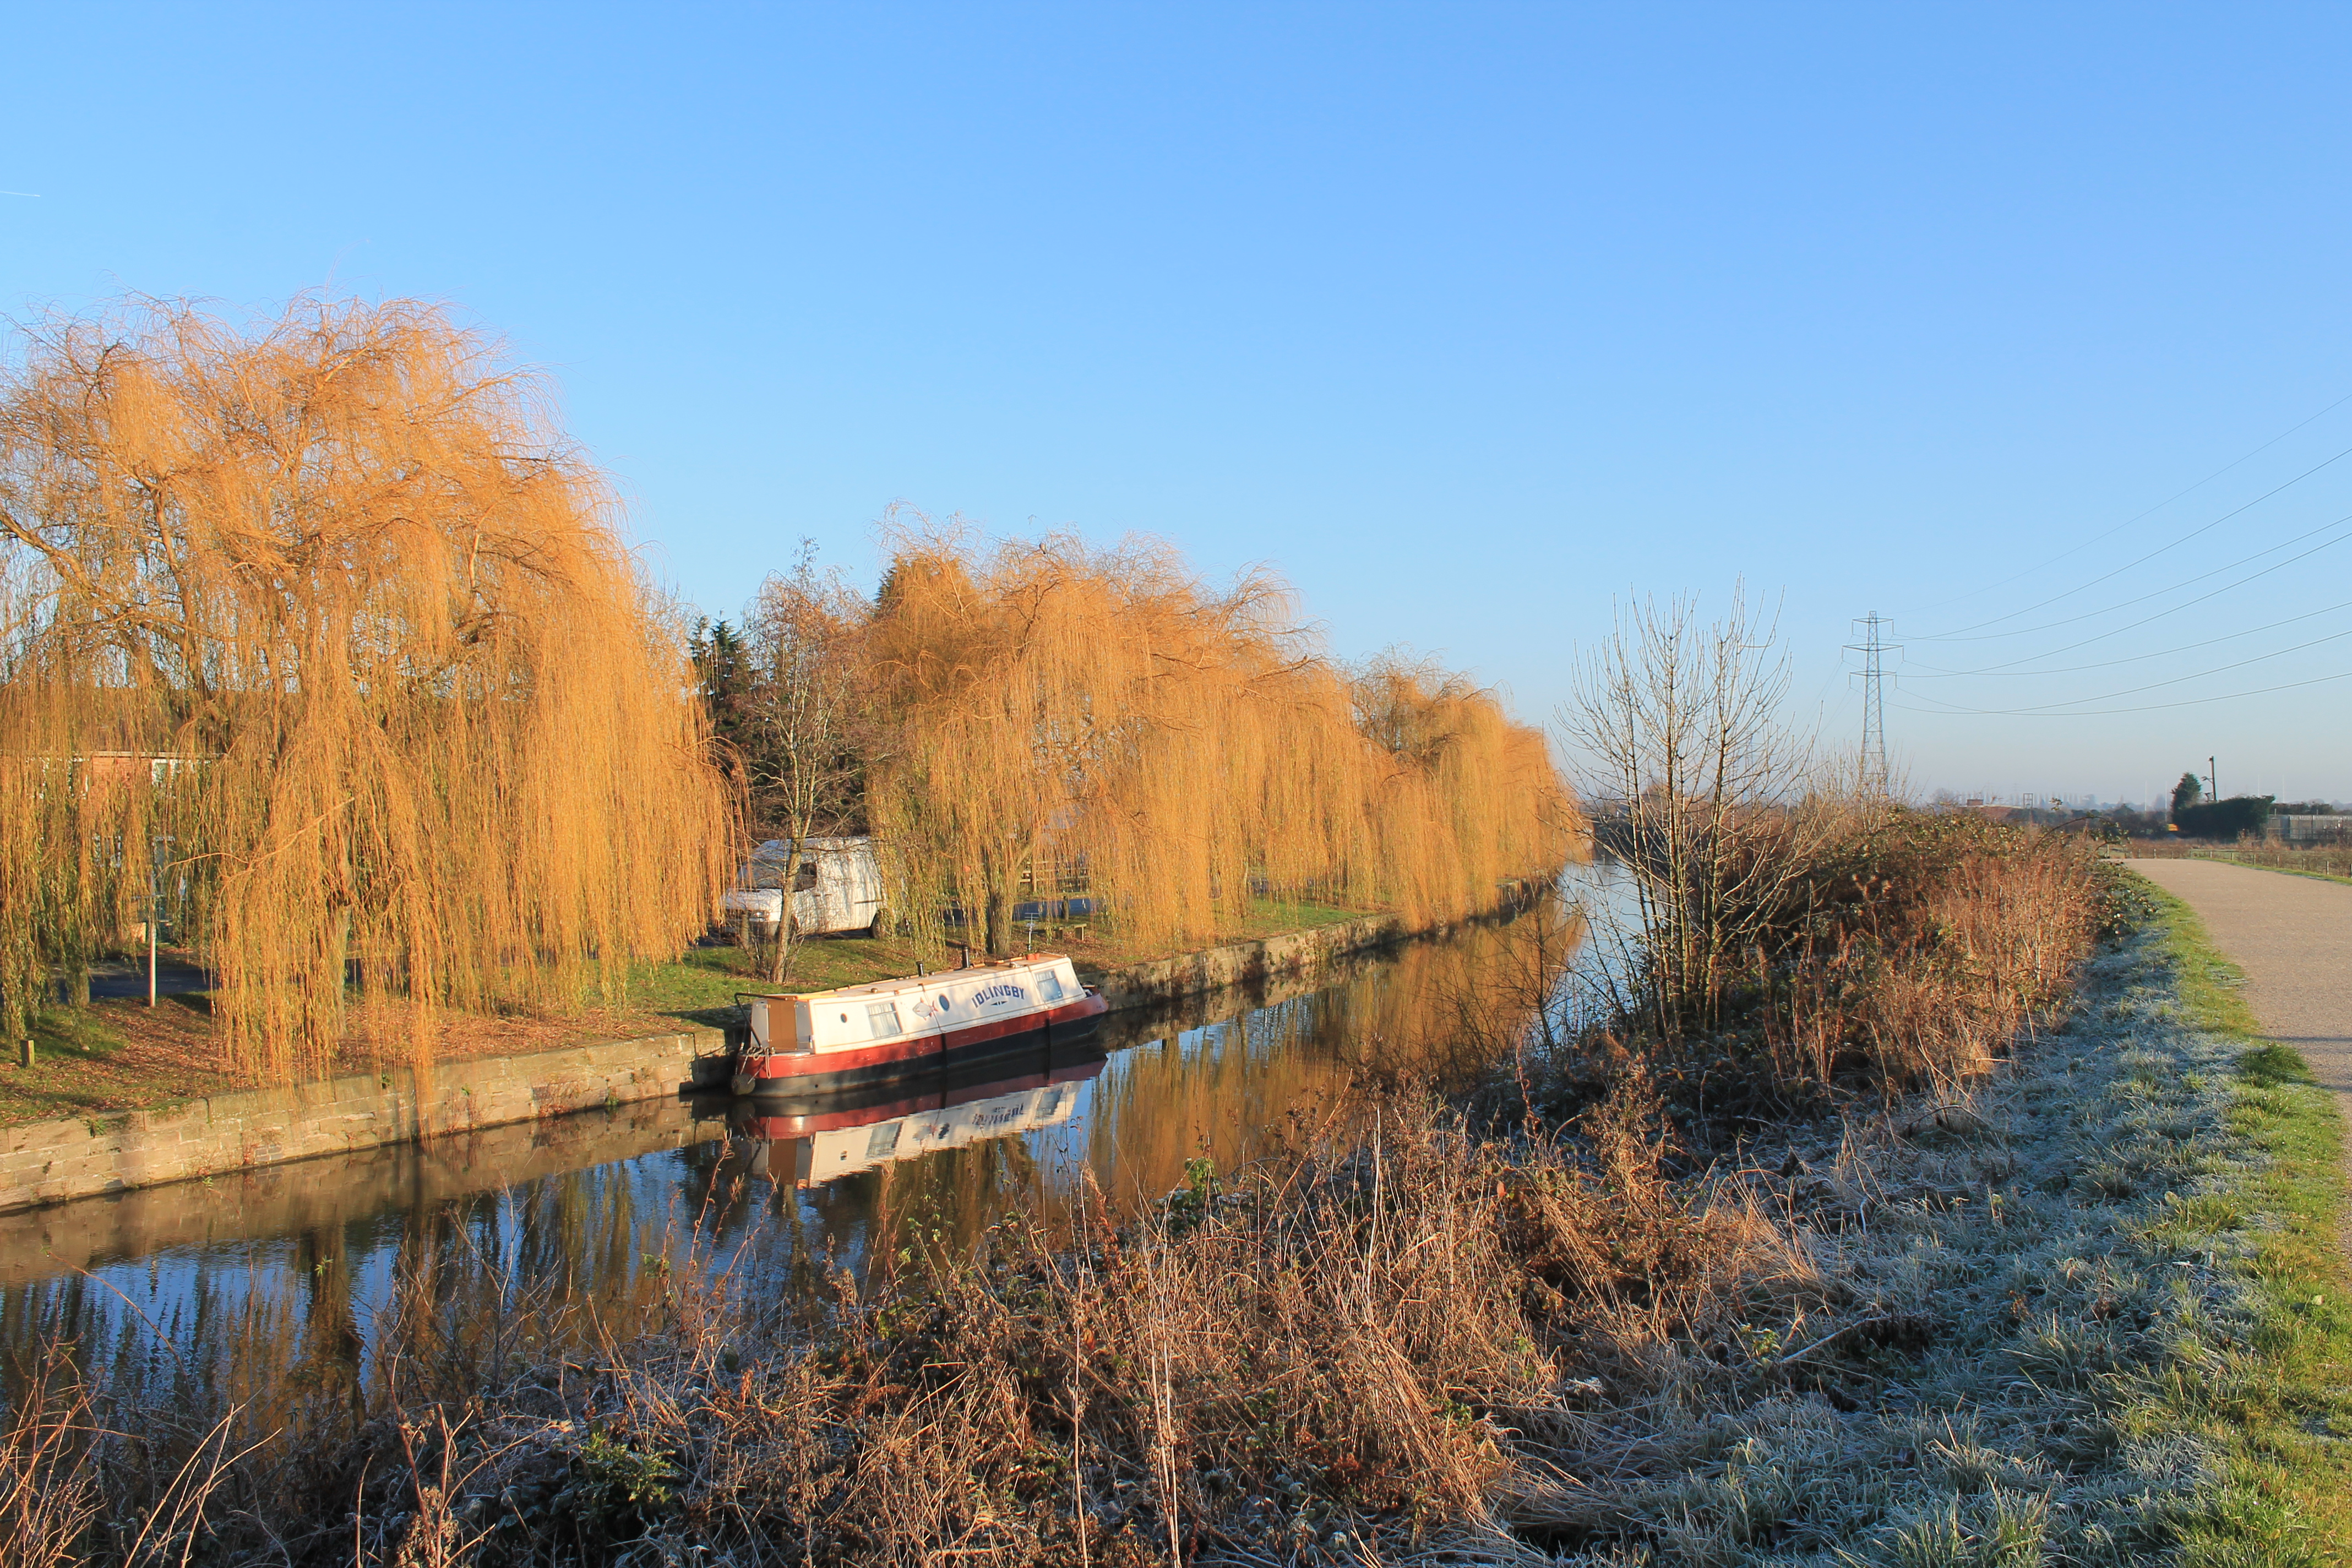 Andrew Guest's image of the canal at Beeston Rylands